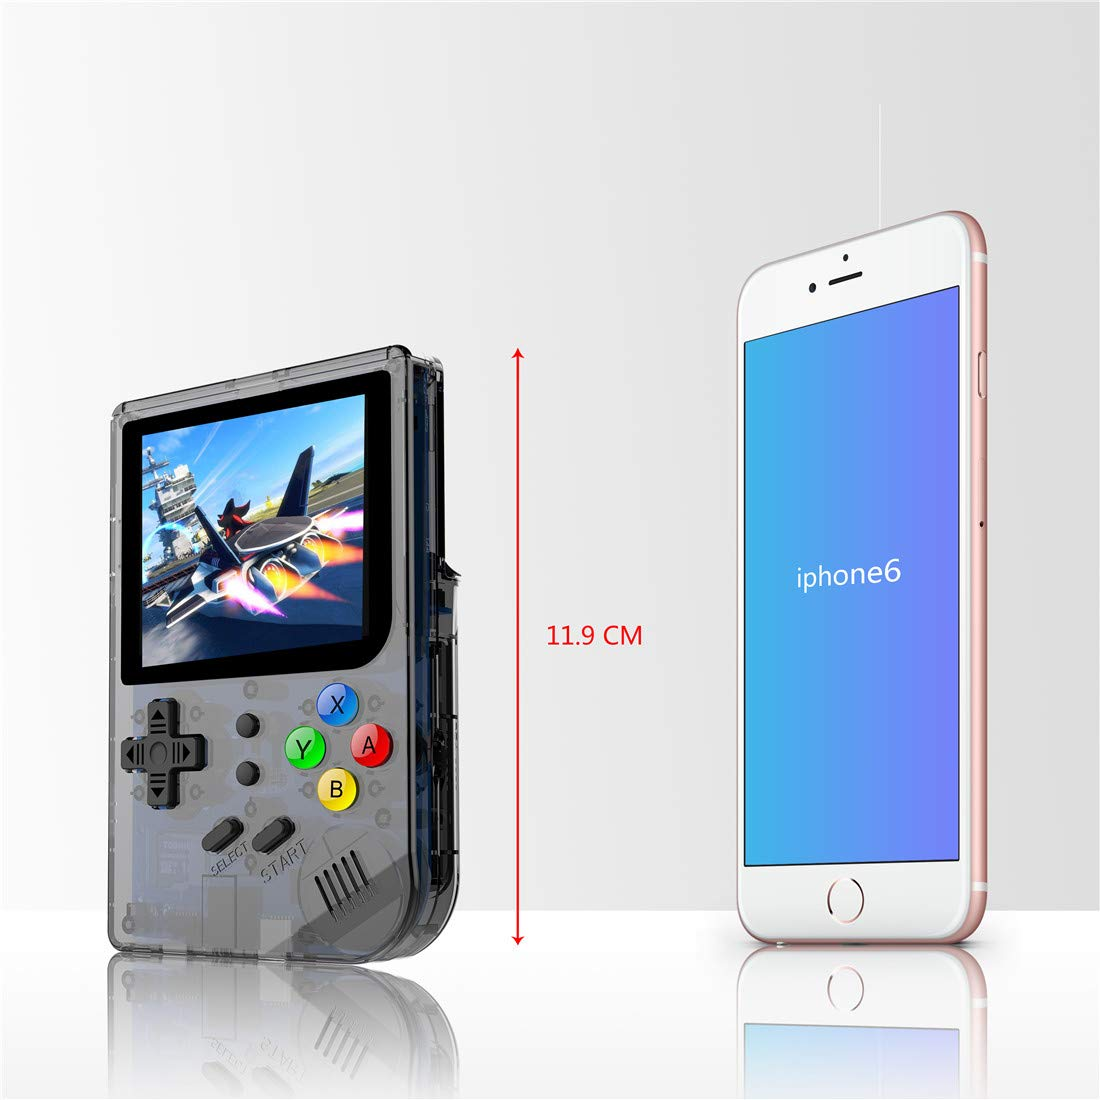 3 INCH Video Games Portable Retro FC Console New BittBoy Retro Game Handheld Games Console Player RG 300 16G 3000 Games Best Gift (Black) by Neutral (Image #10)